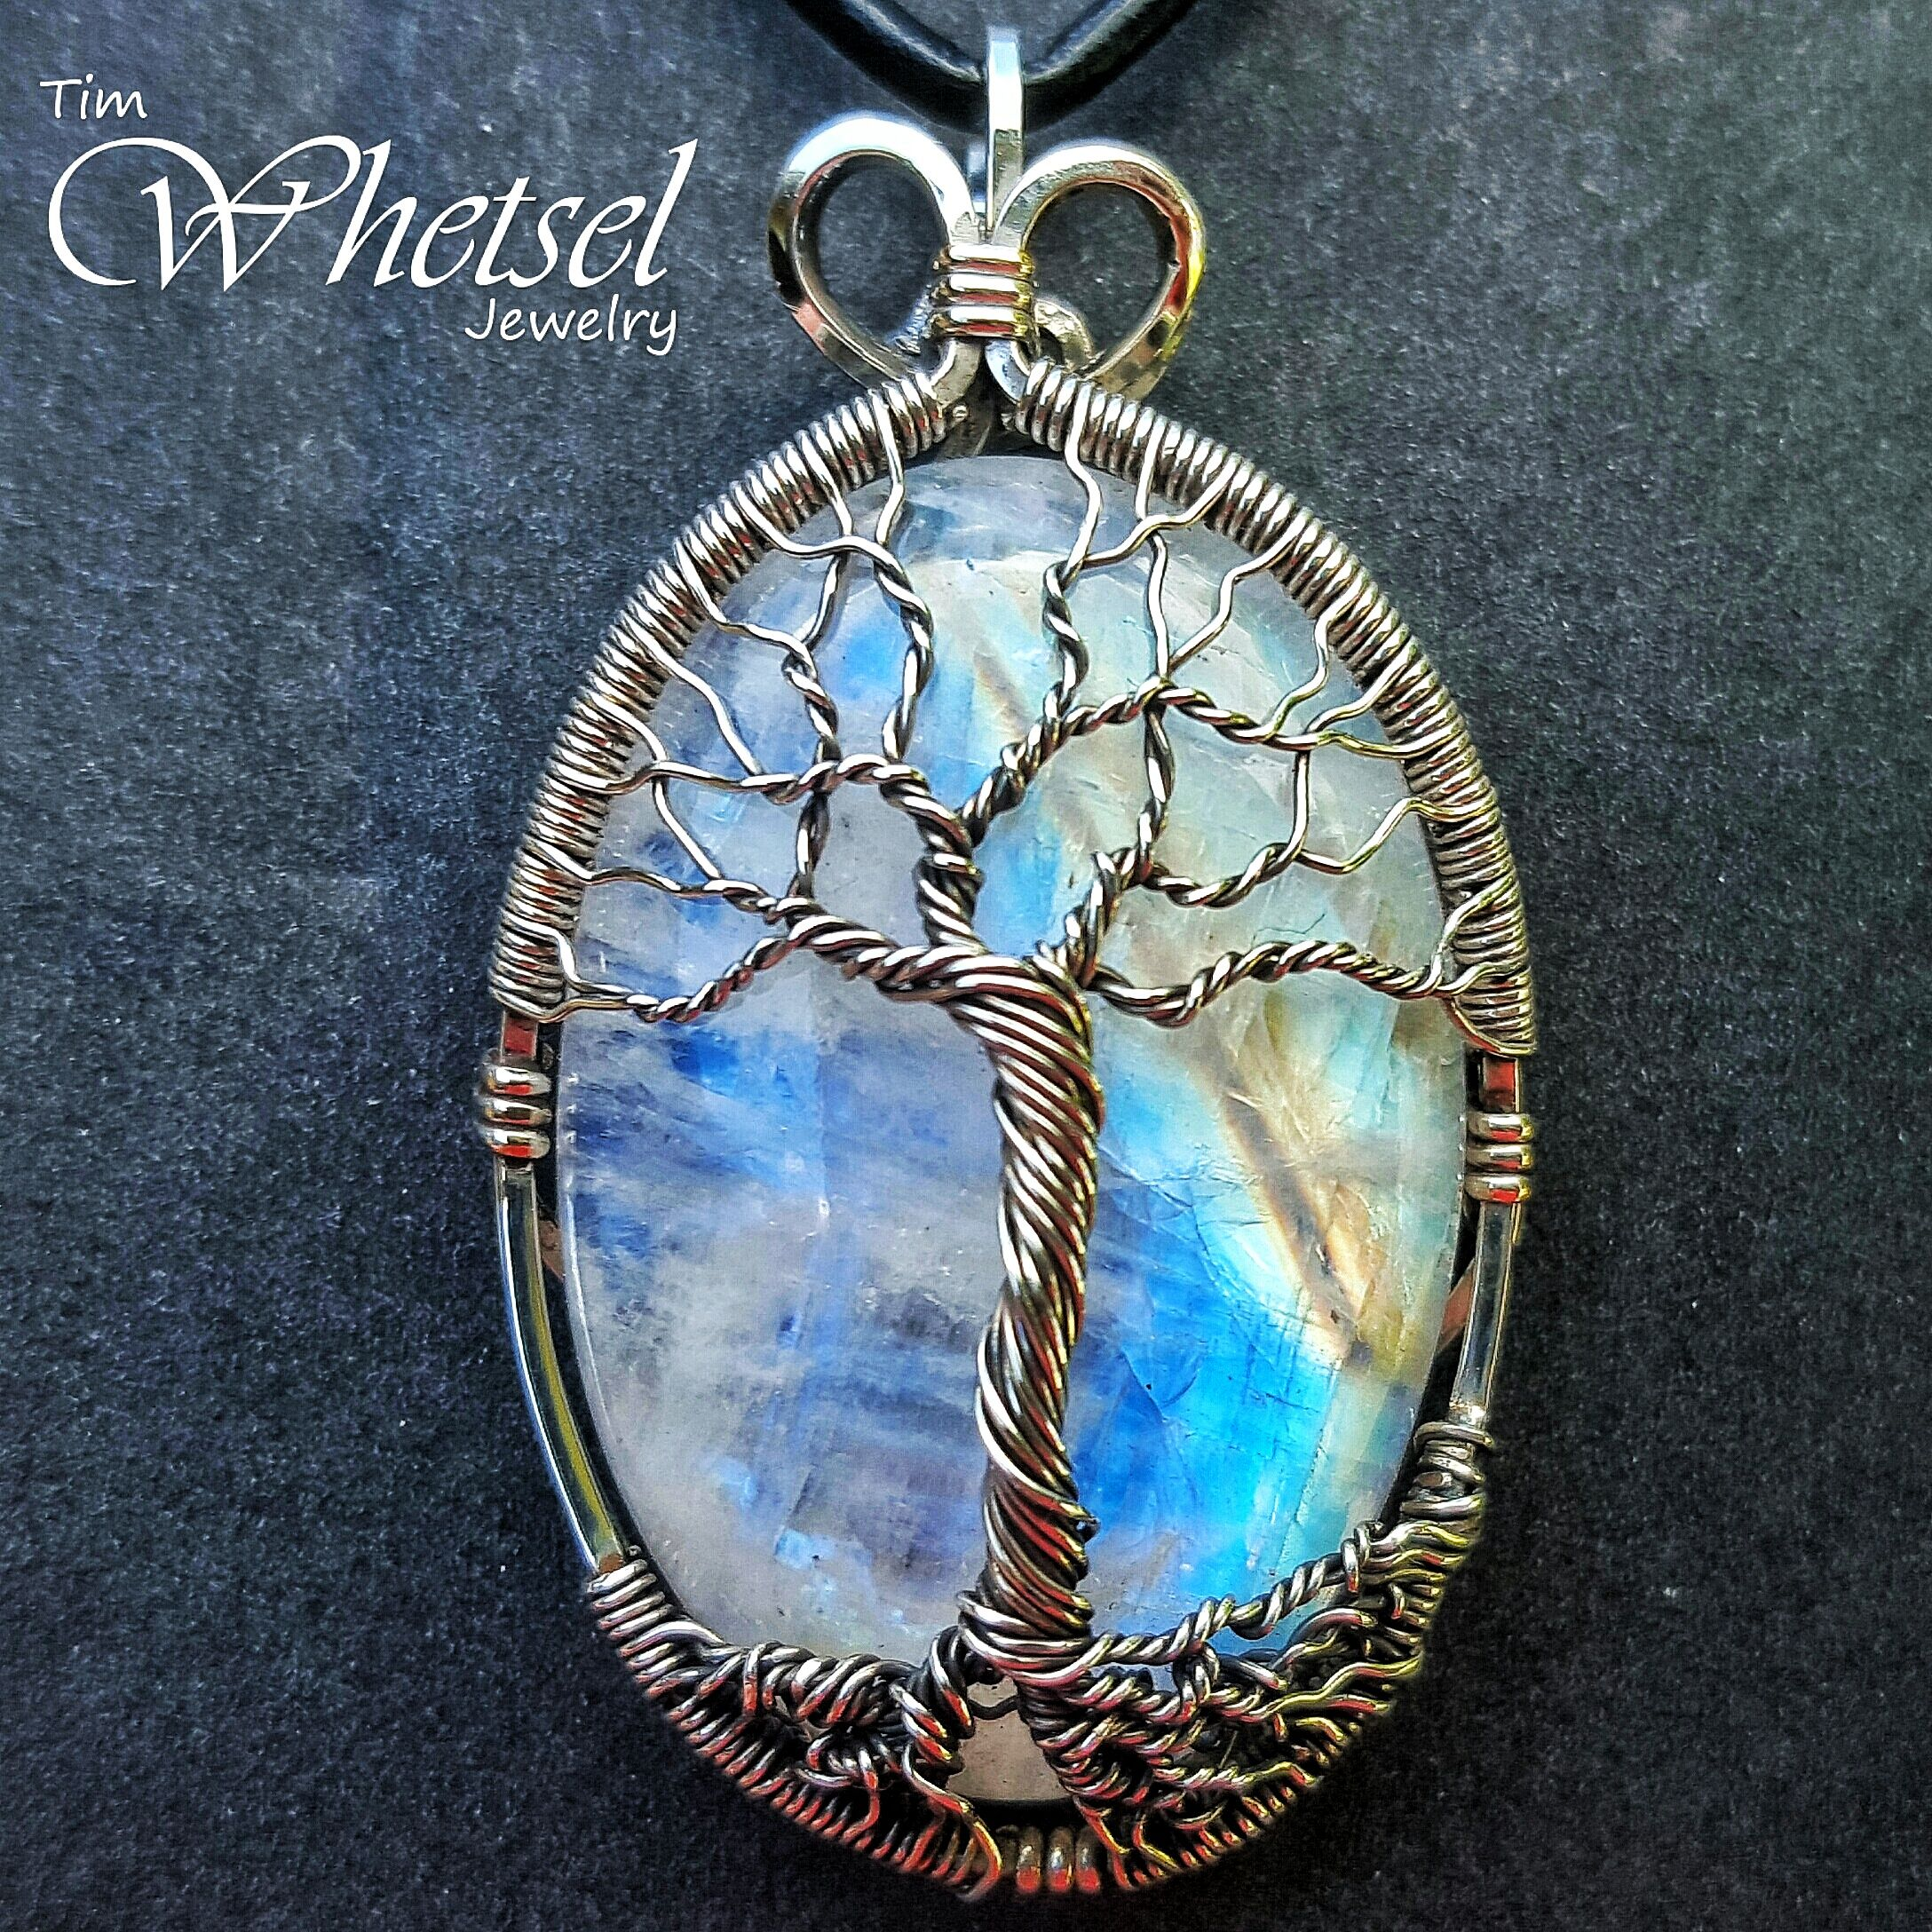 design pendant ideas celtic moon fashion moonstone trends stone designs jewelry